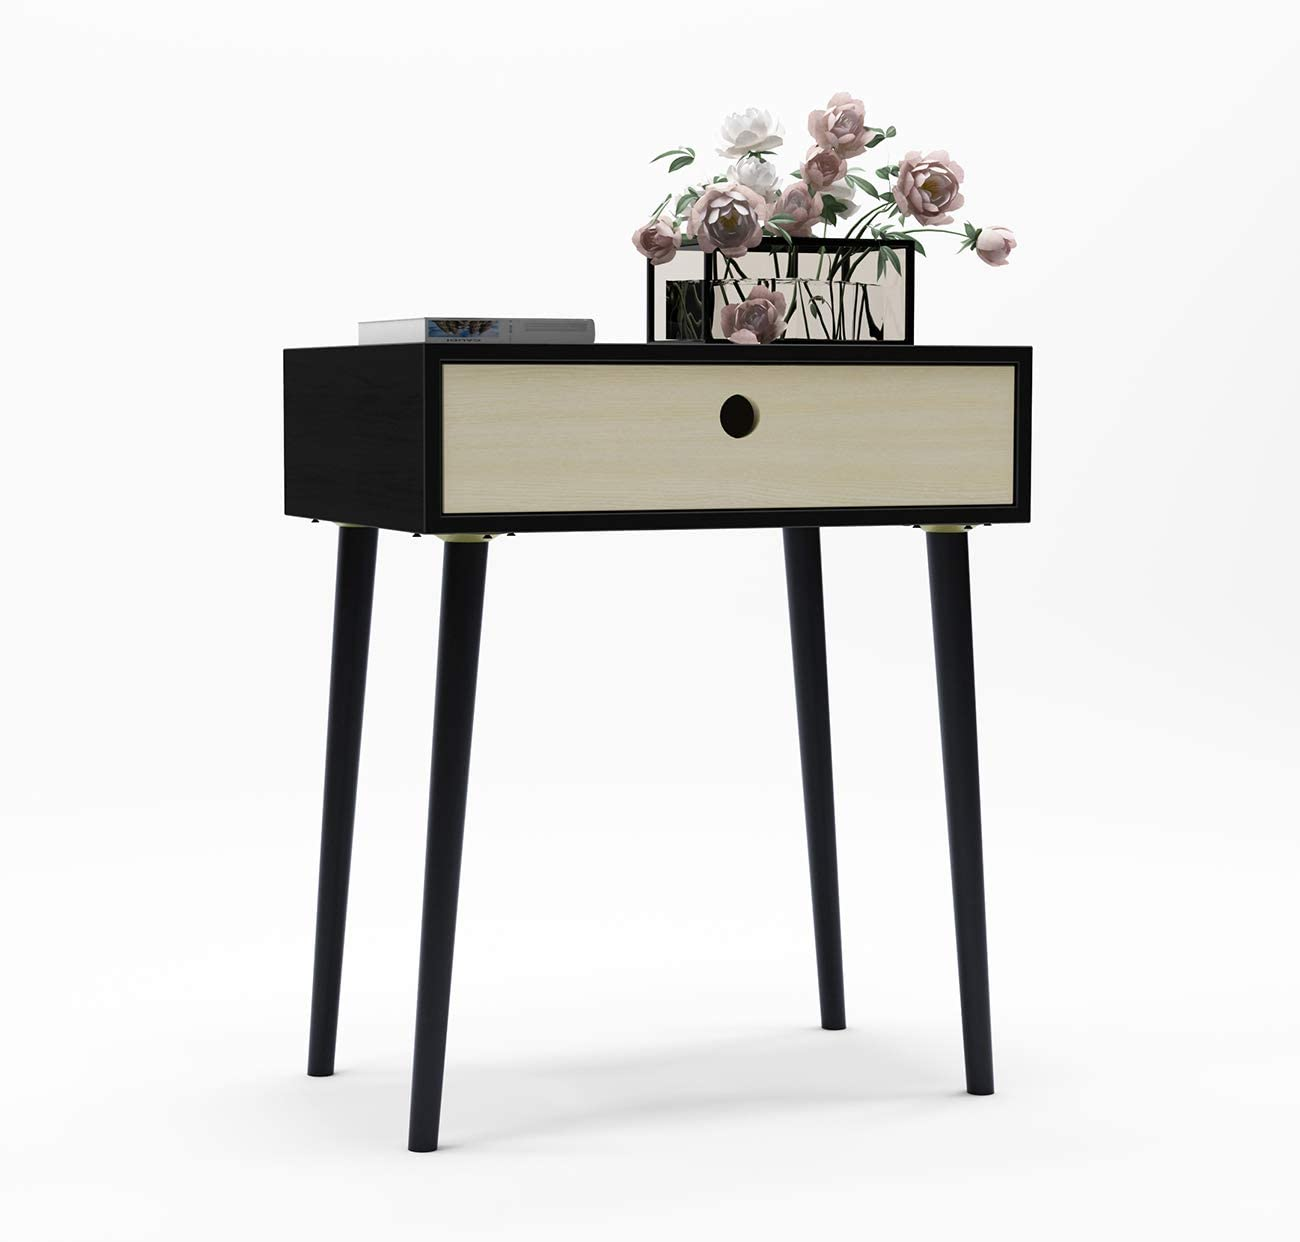 SogesPower Nightstand Bedside Table End Table with Drawer Side Table for Bedroom Coffee Table for Living Room Console Table for Home and Office Black SPYS-SYS1004-CA